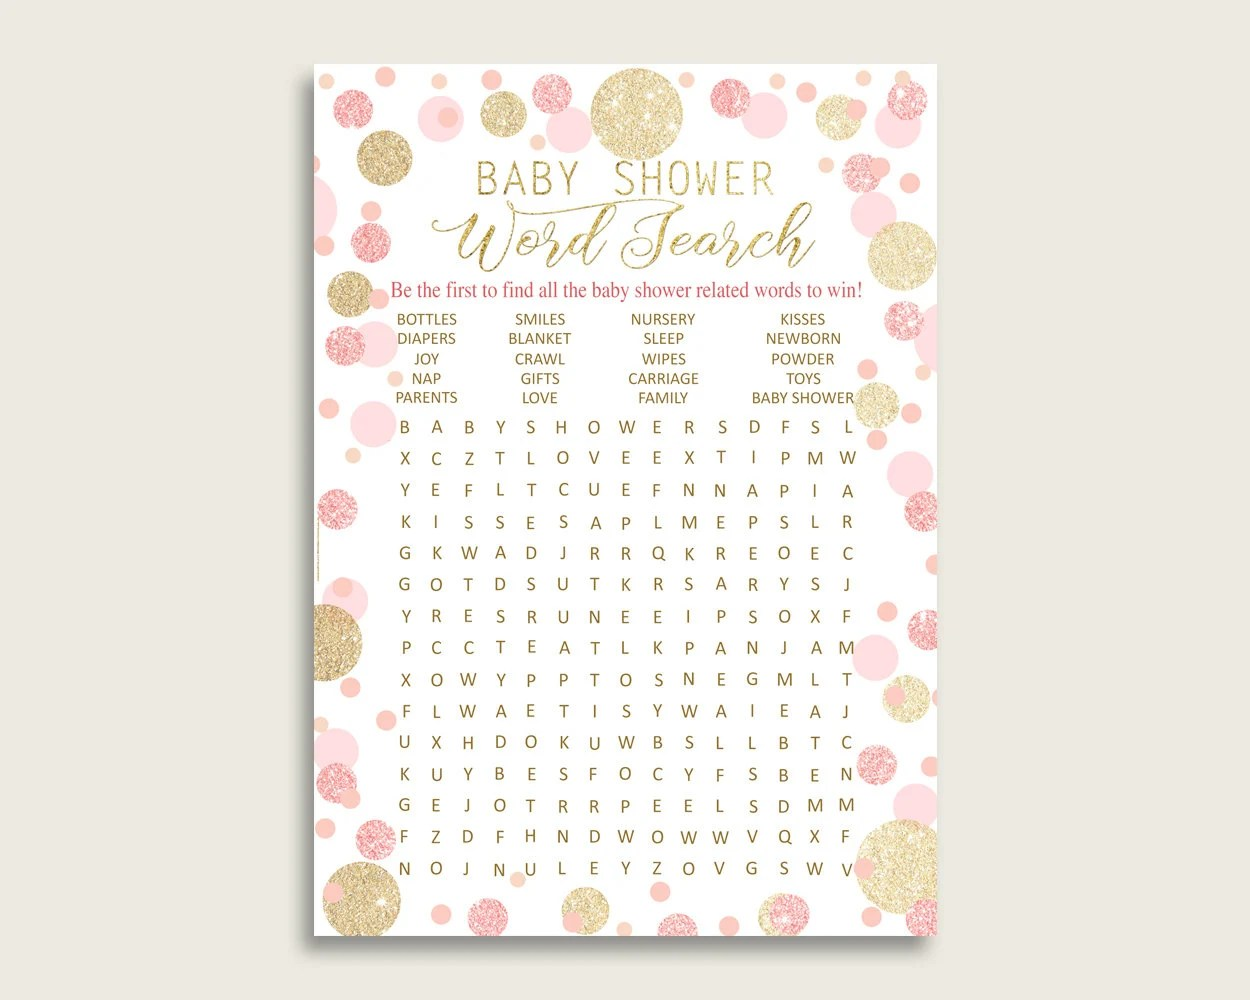 Baby Shower Words For A Card - Drawing Apem